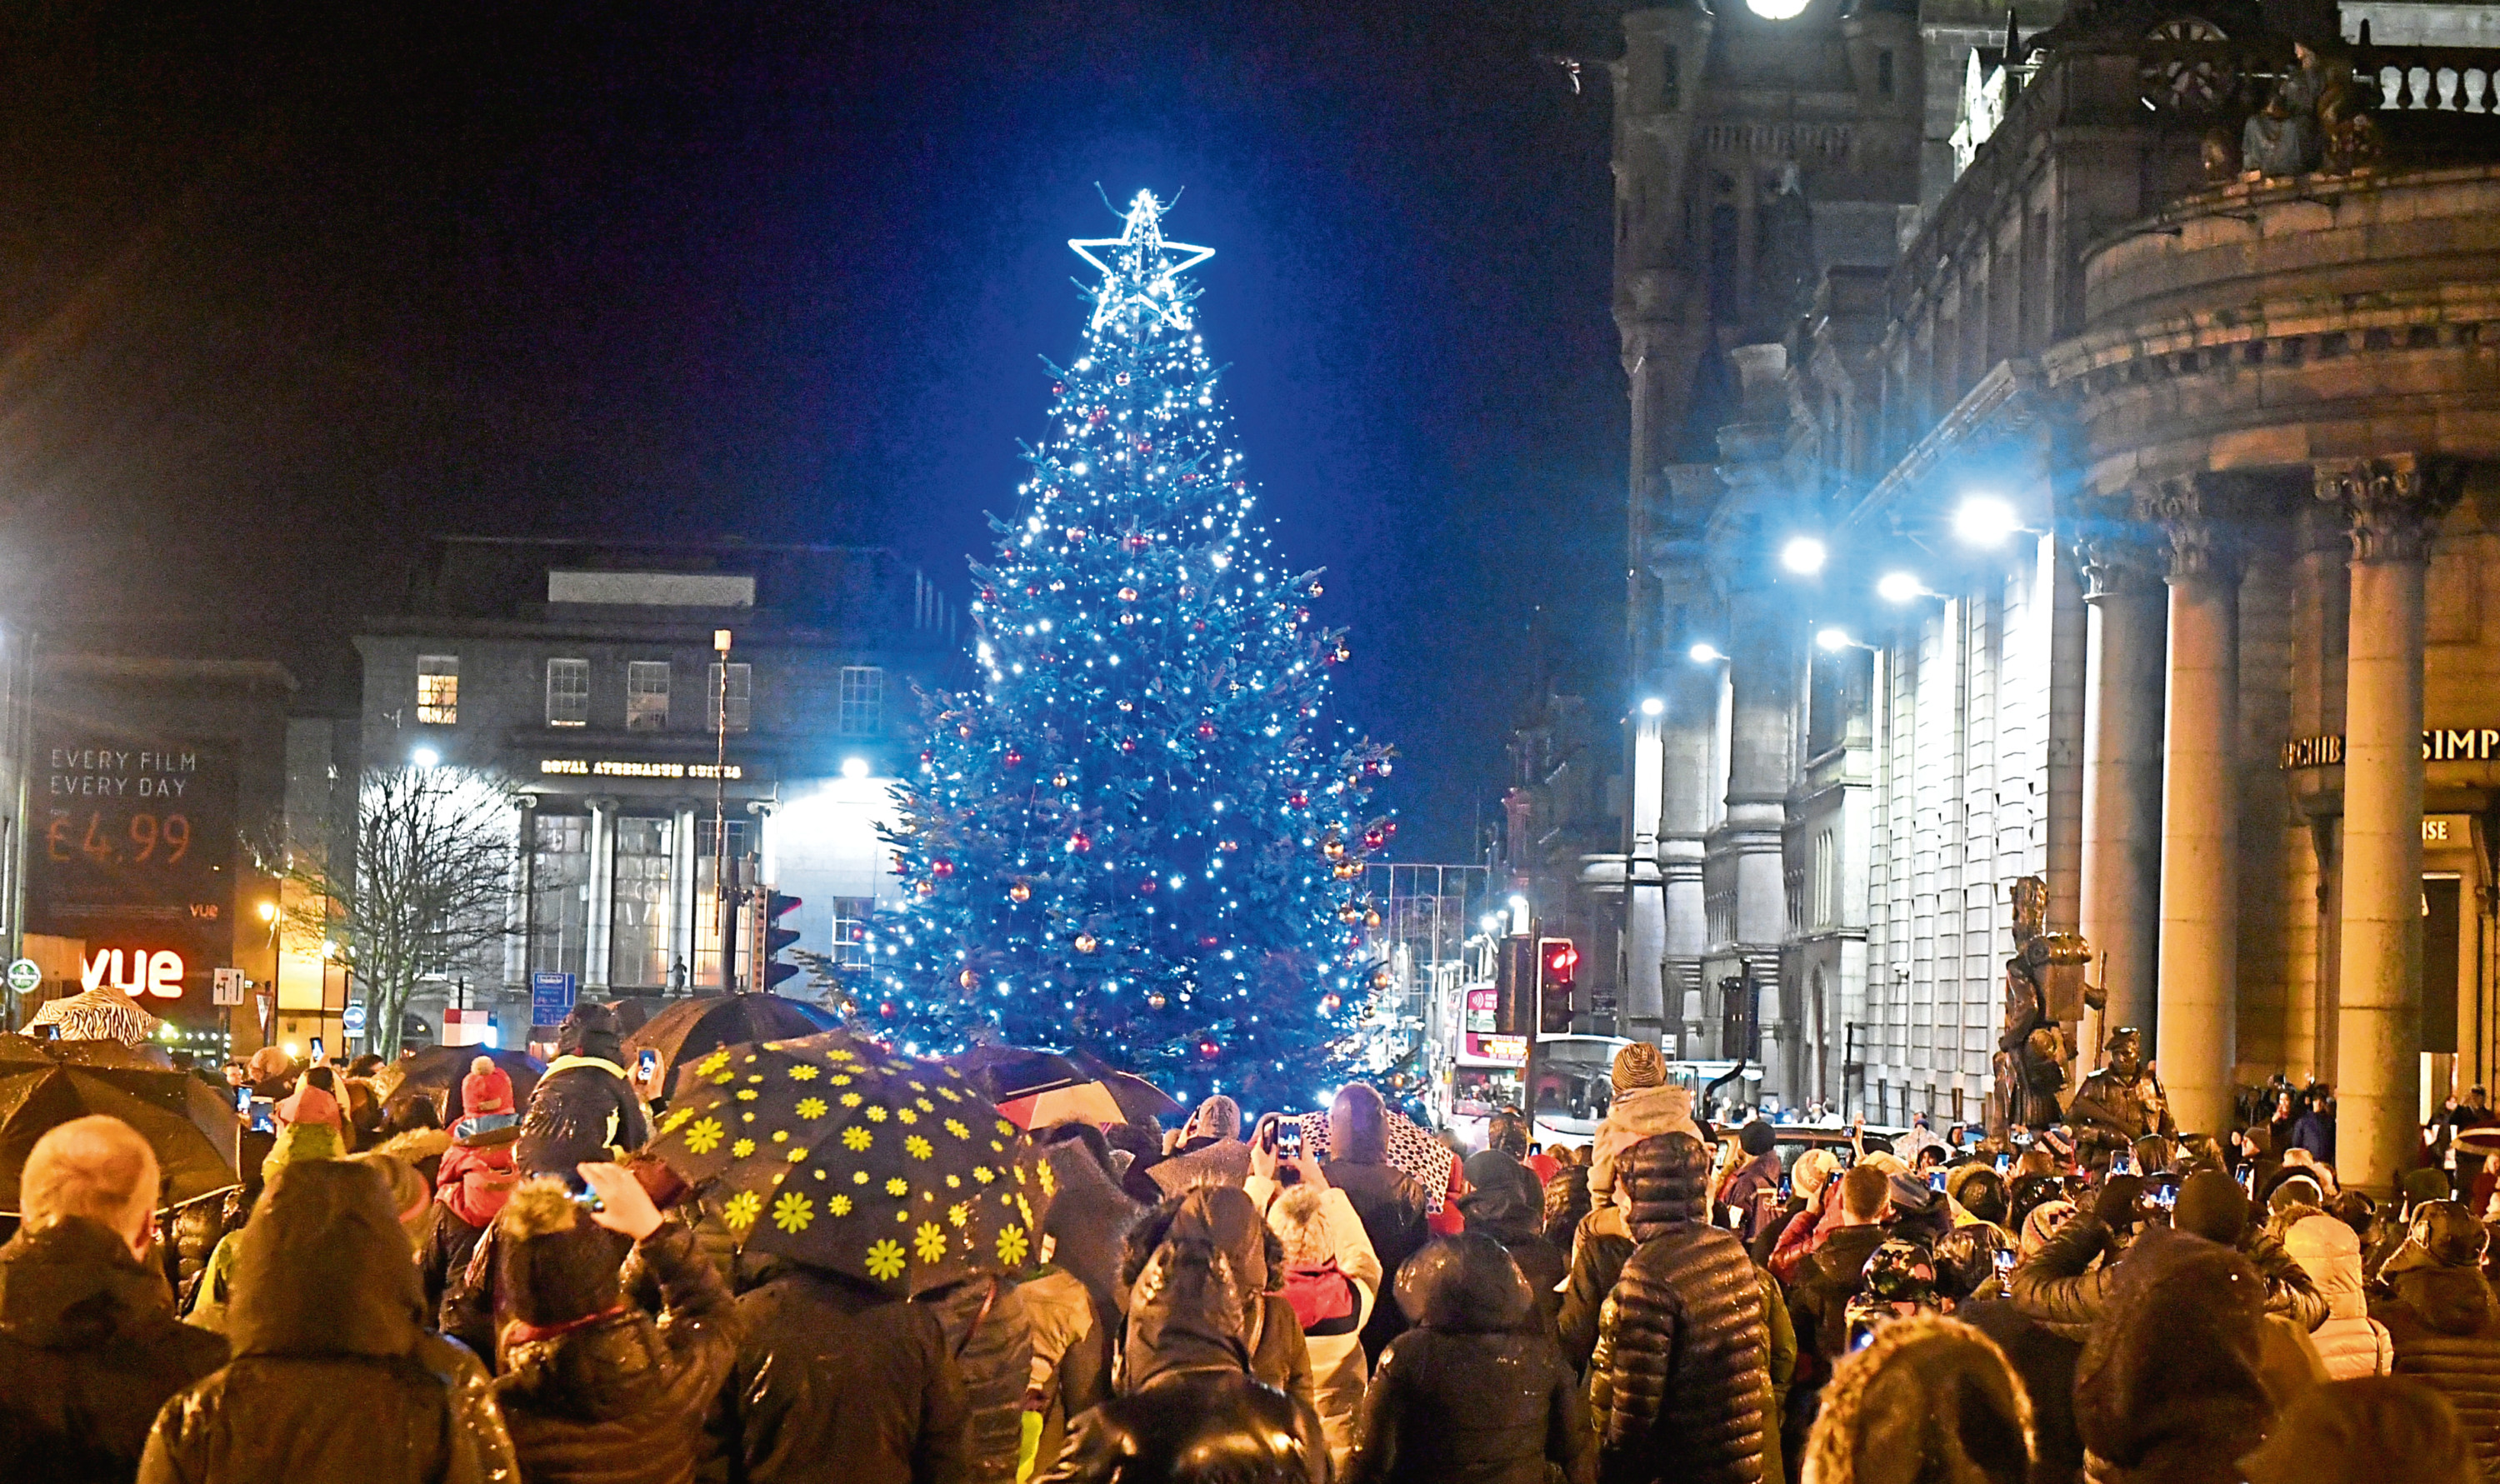 Crowds gather to watch the lights switch-on at the Castlegate